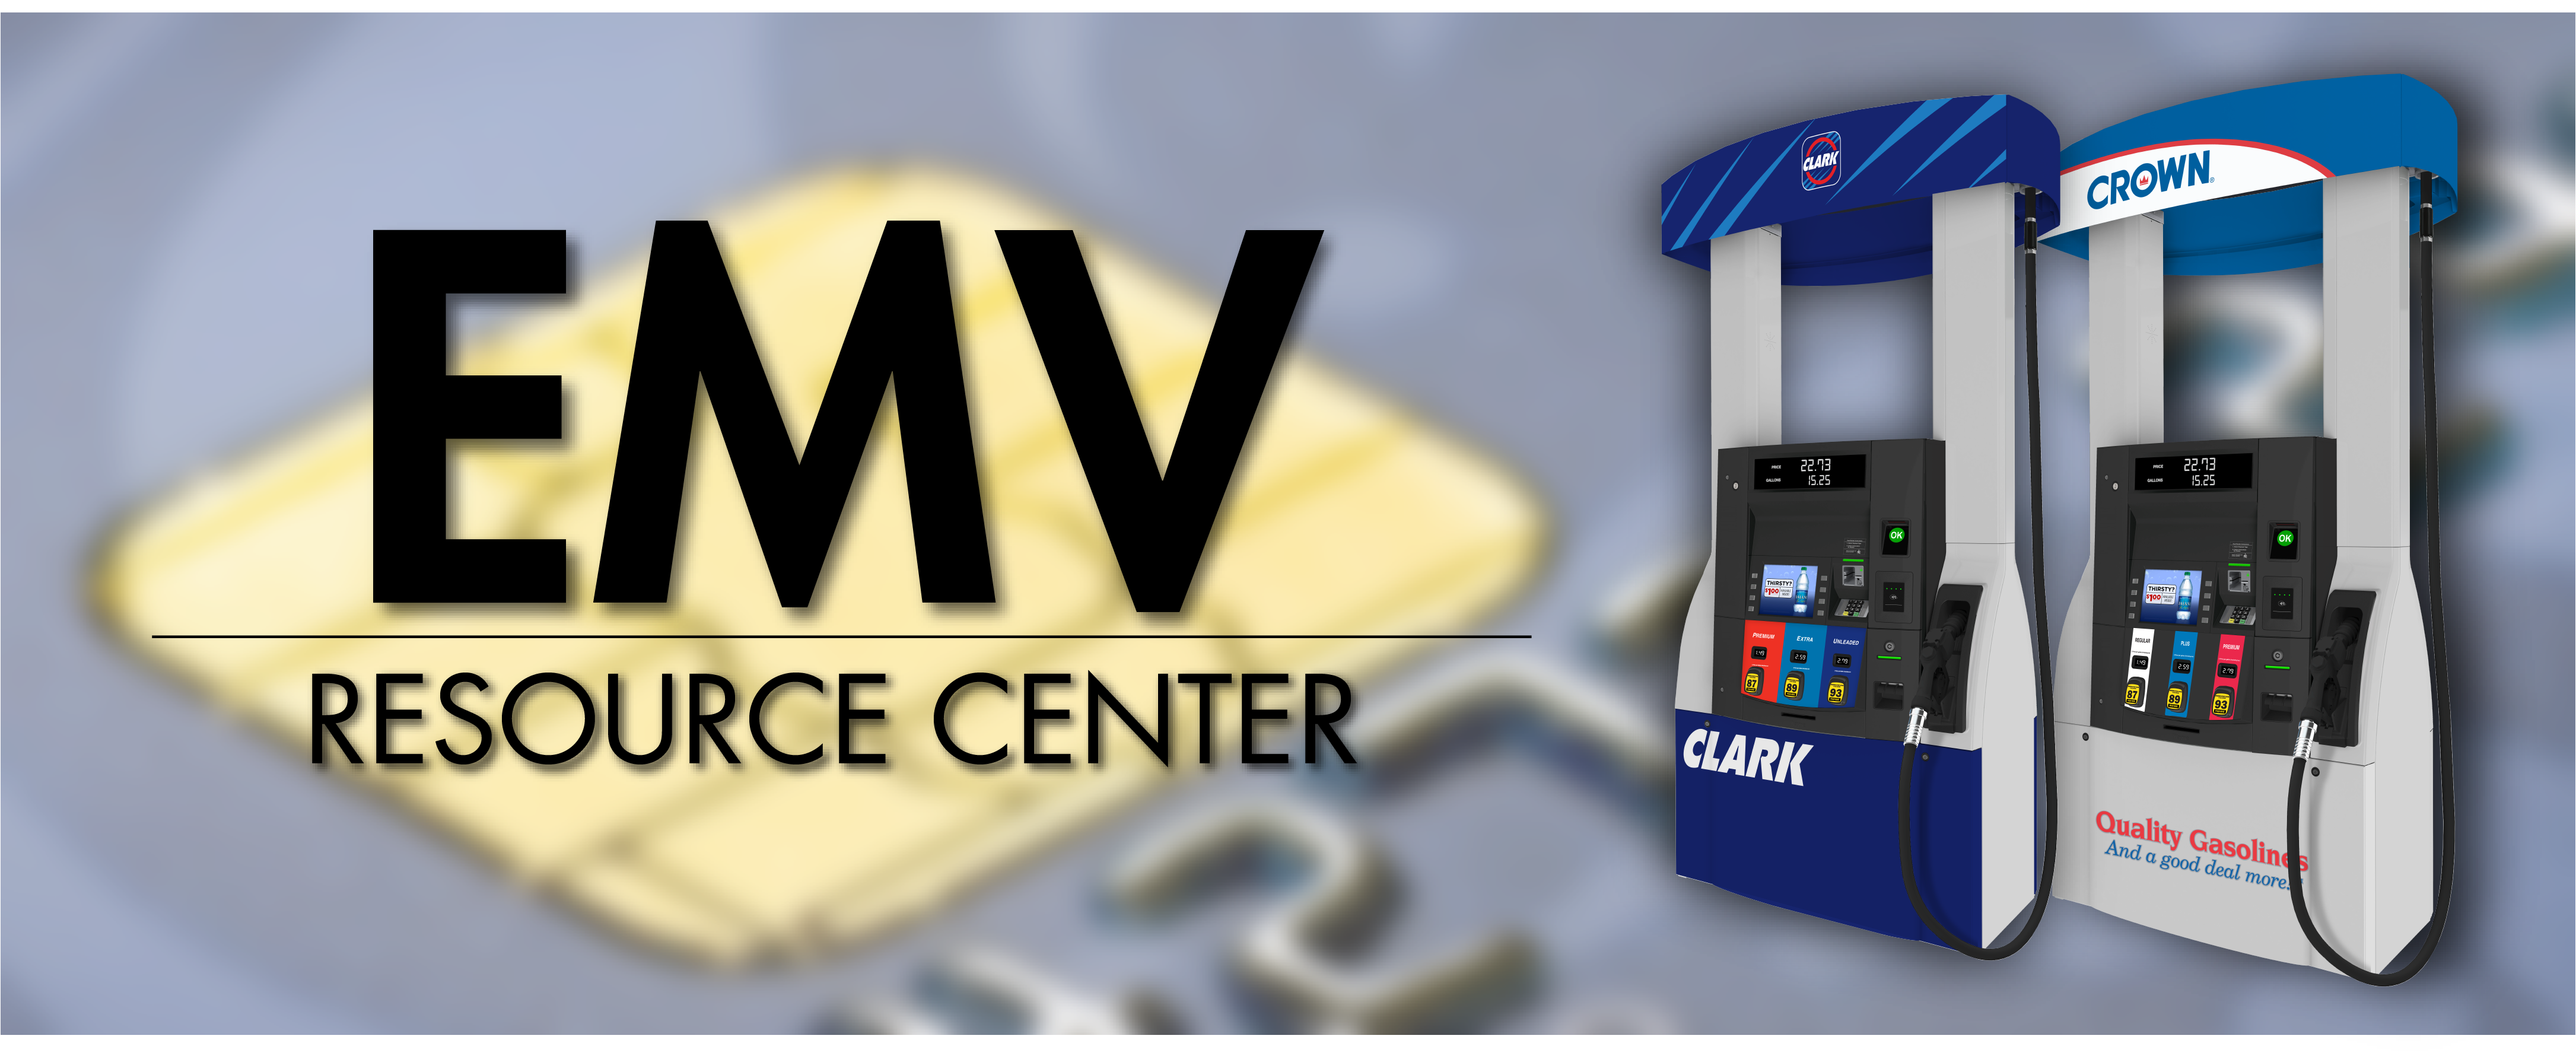 EMV Resource Center